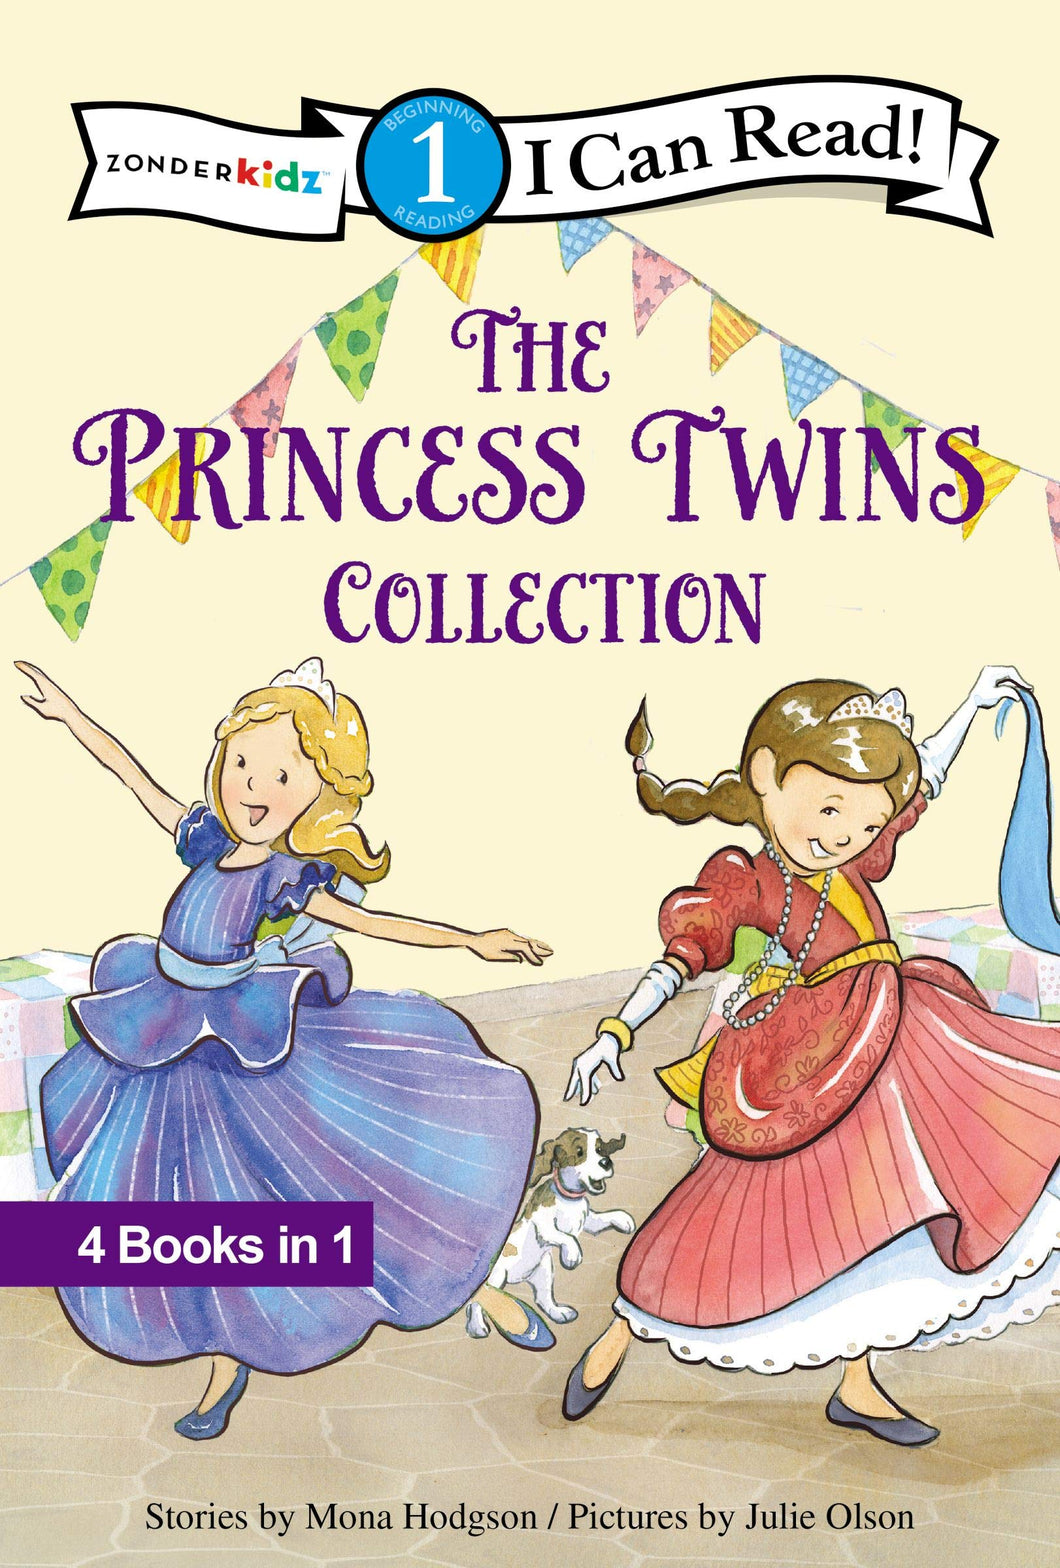 The Princess Twin's Collection